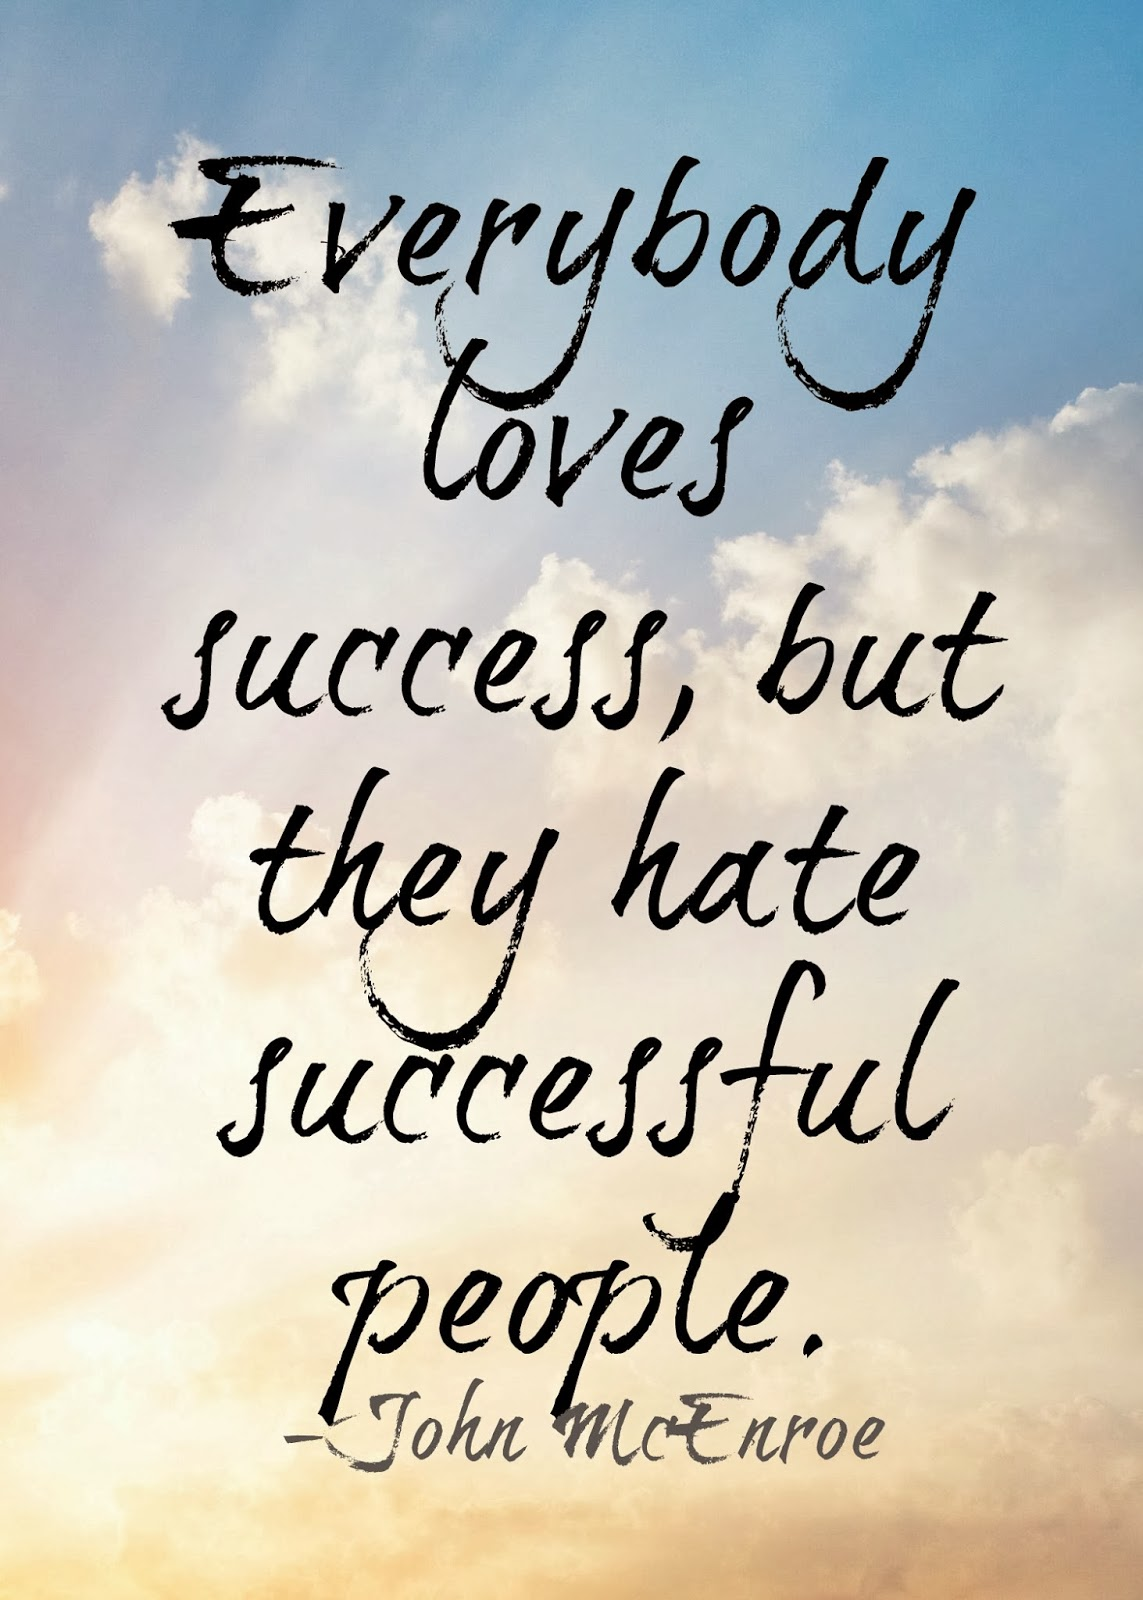 Quotes About Jealous People Does Success Breed Hate  Helene In Between